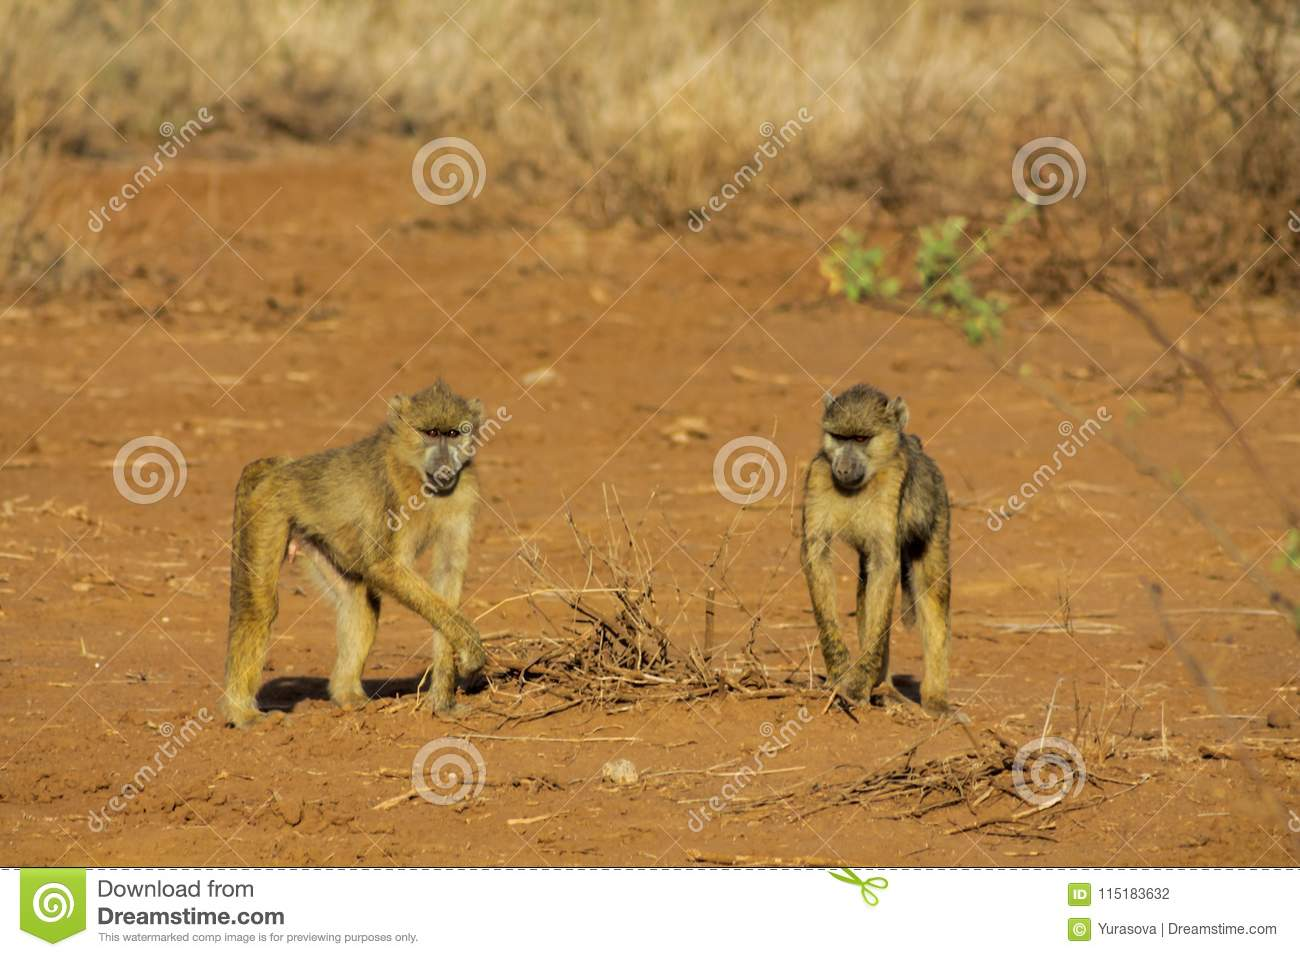 Baboon monkey in Africa wild nature